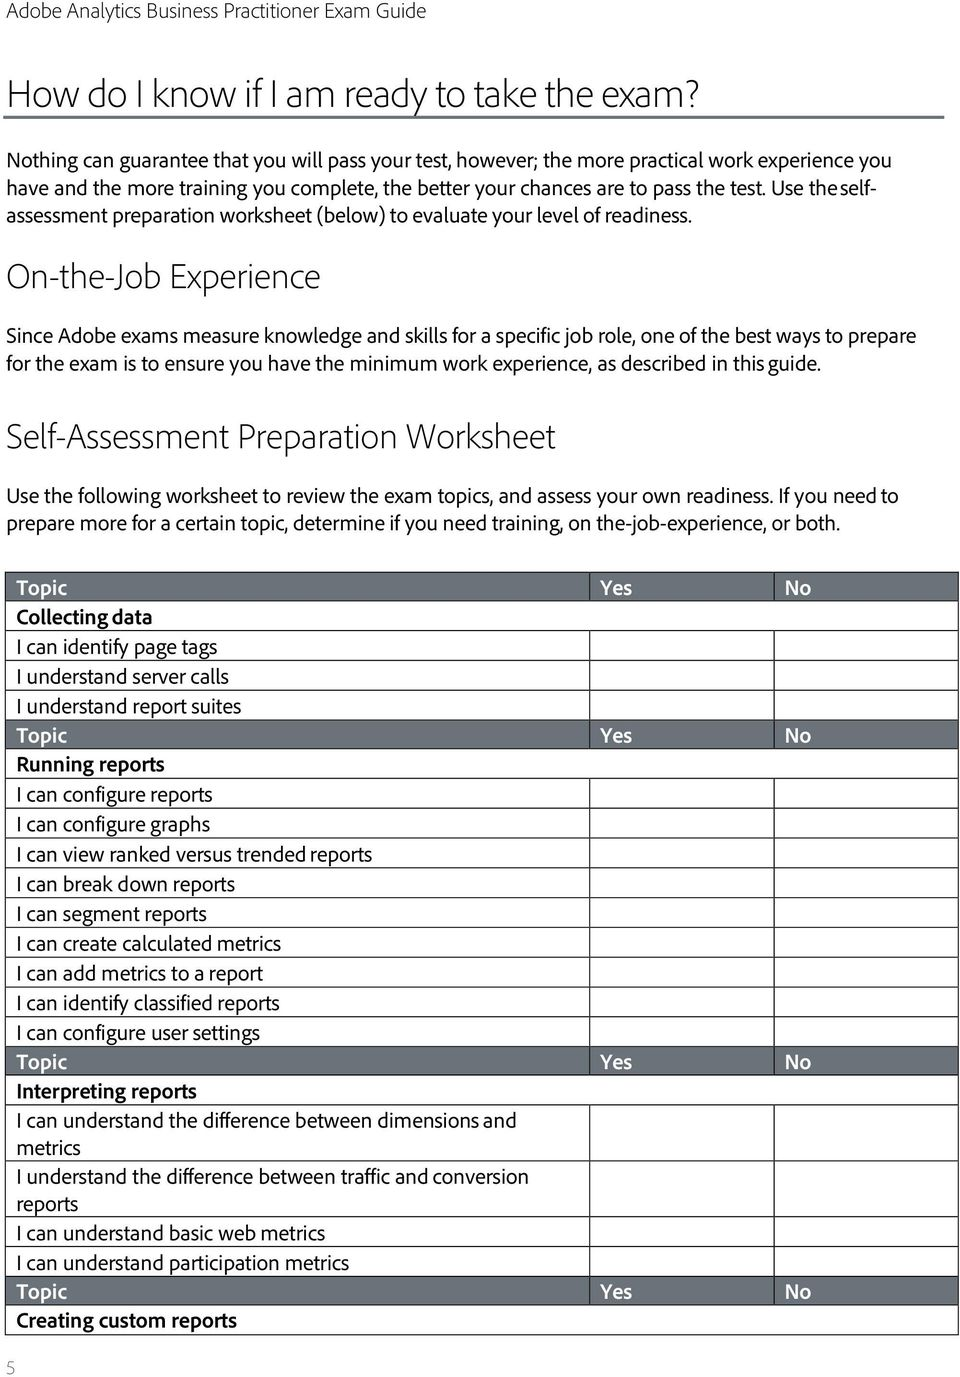 Use the selfassessment preparation worksheet (below) to evaluate your level of readiness.